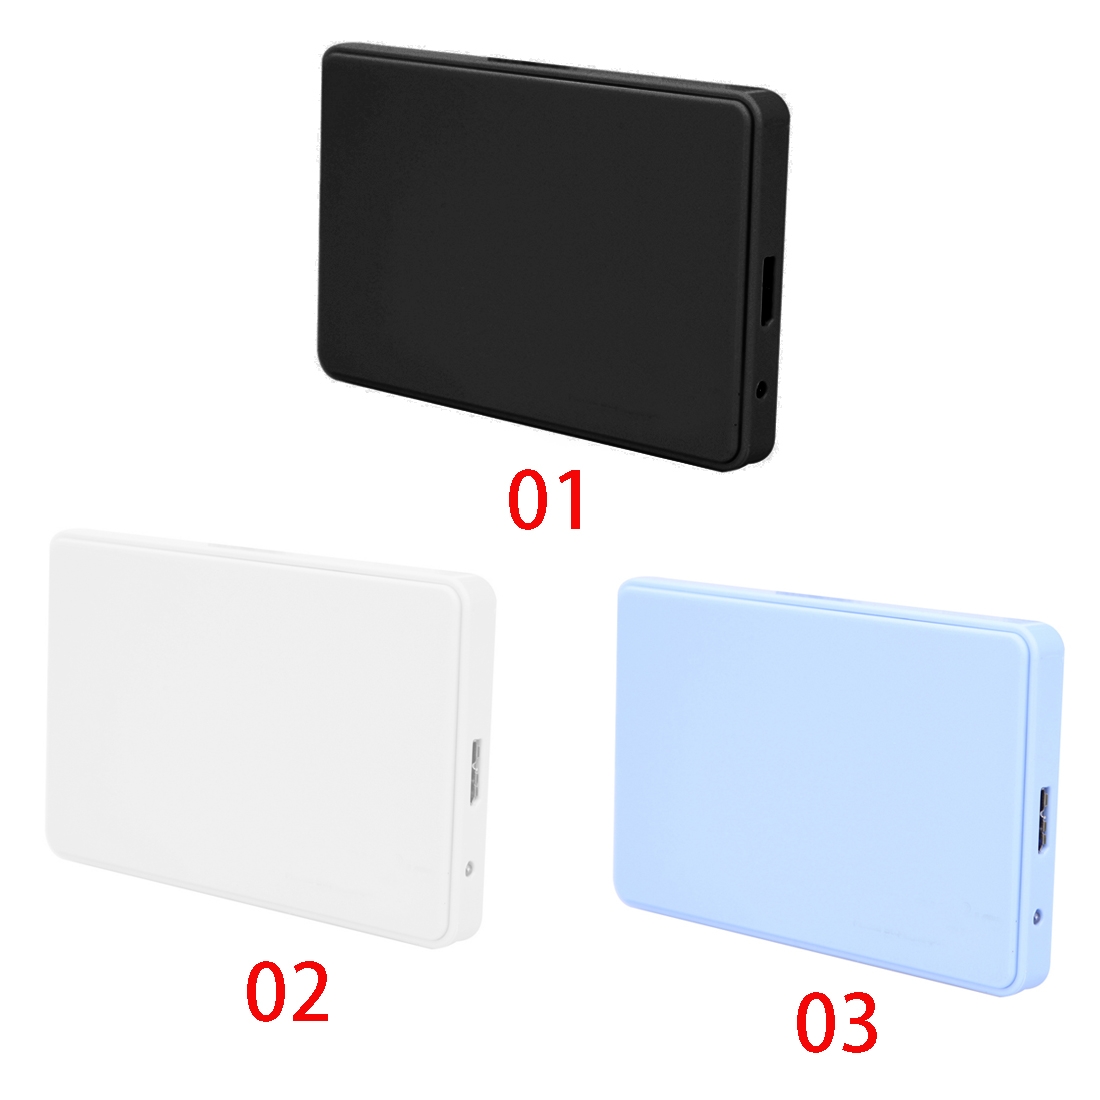 3 color 2.5 USB 3.0 SATA HD Box HDD Hard Drive External Enclosure Case Support Up to 2TB Data transfer backup tool For PC